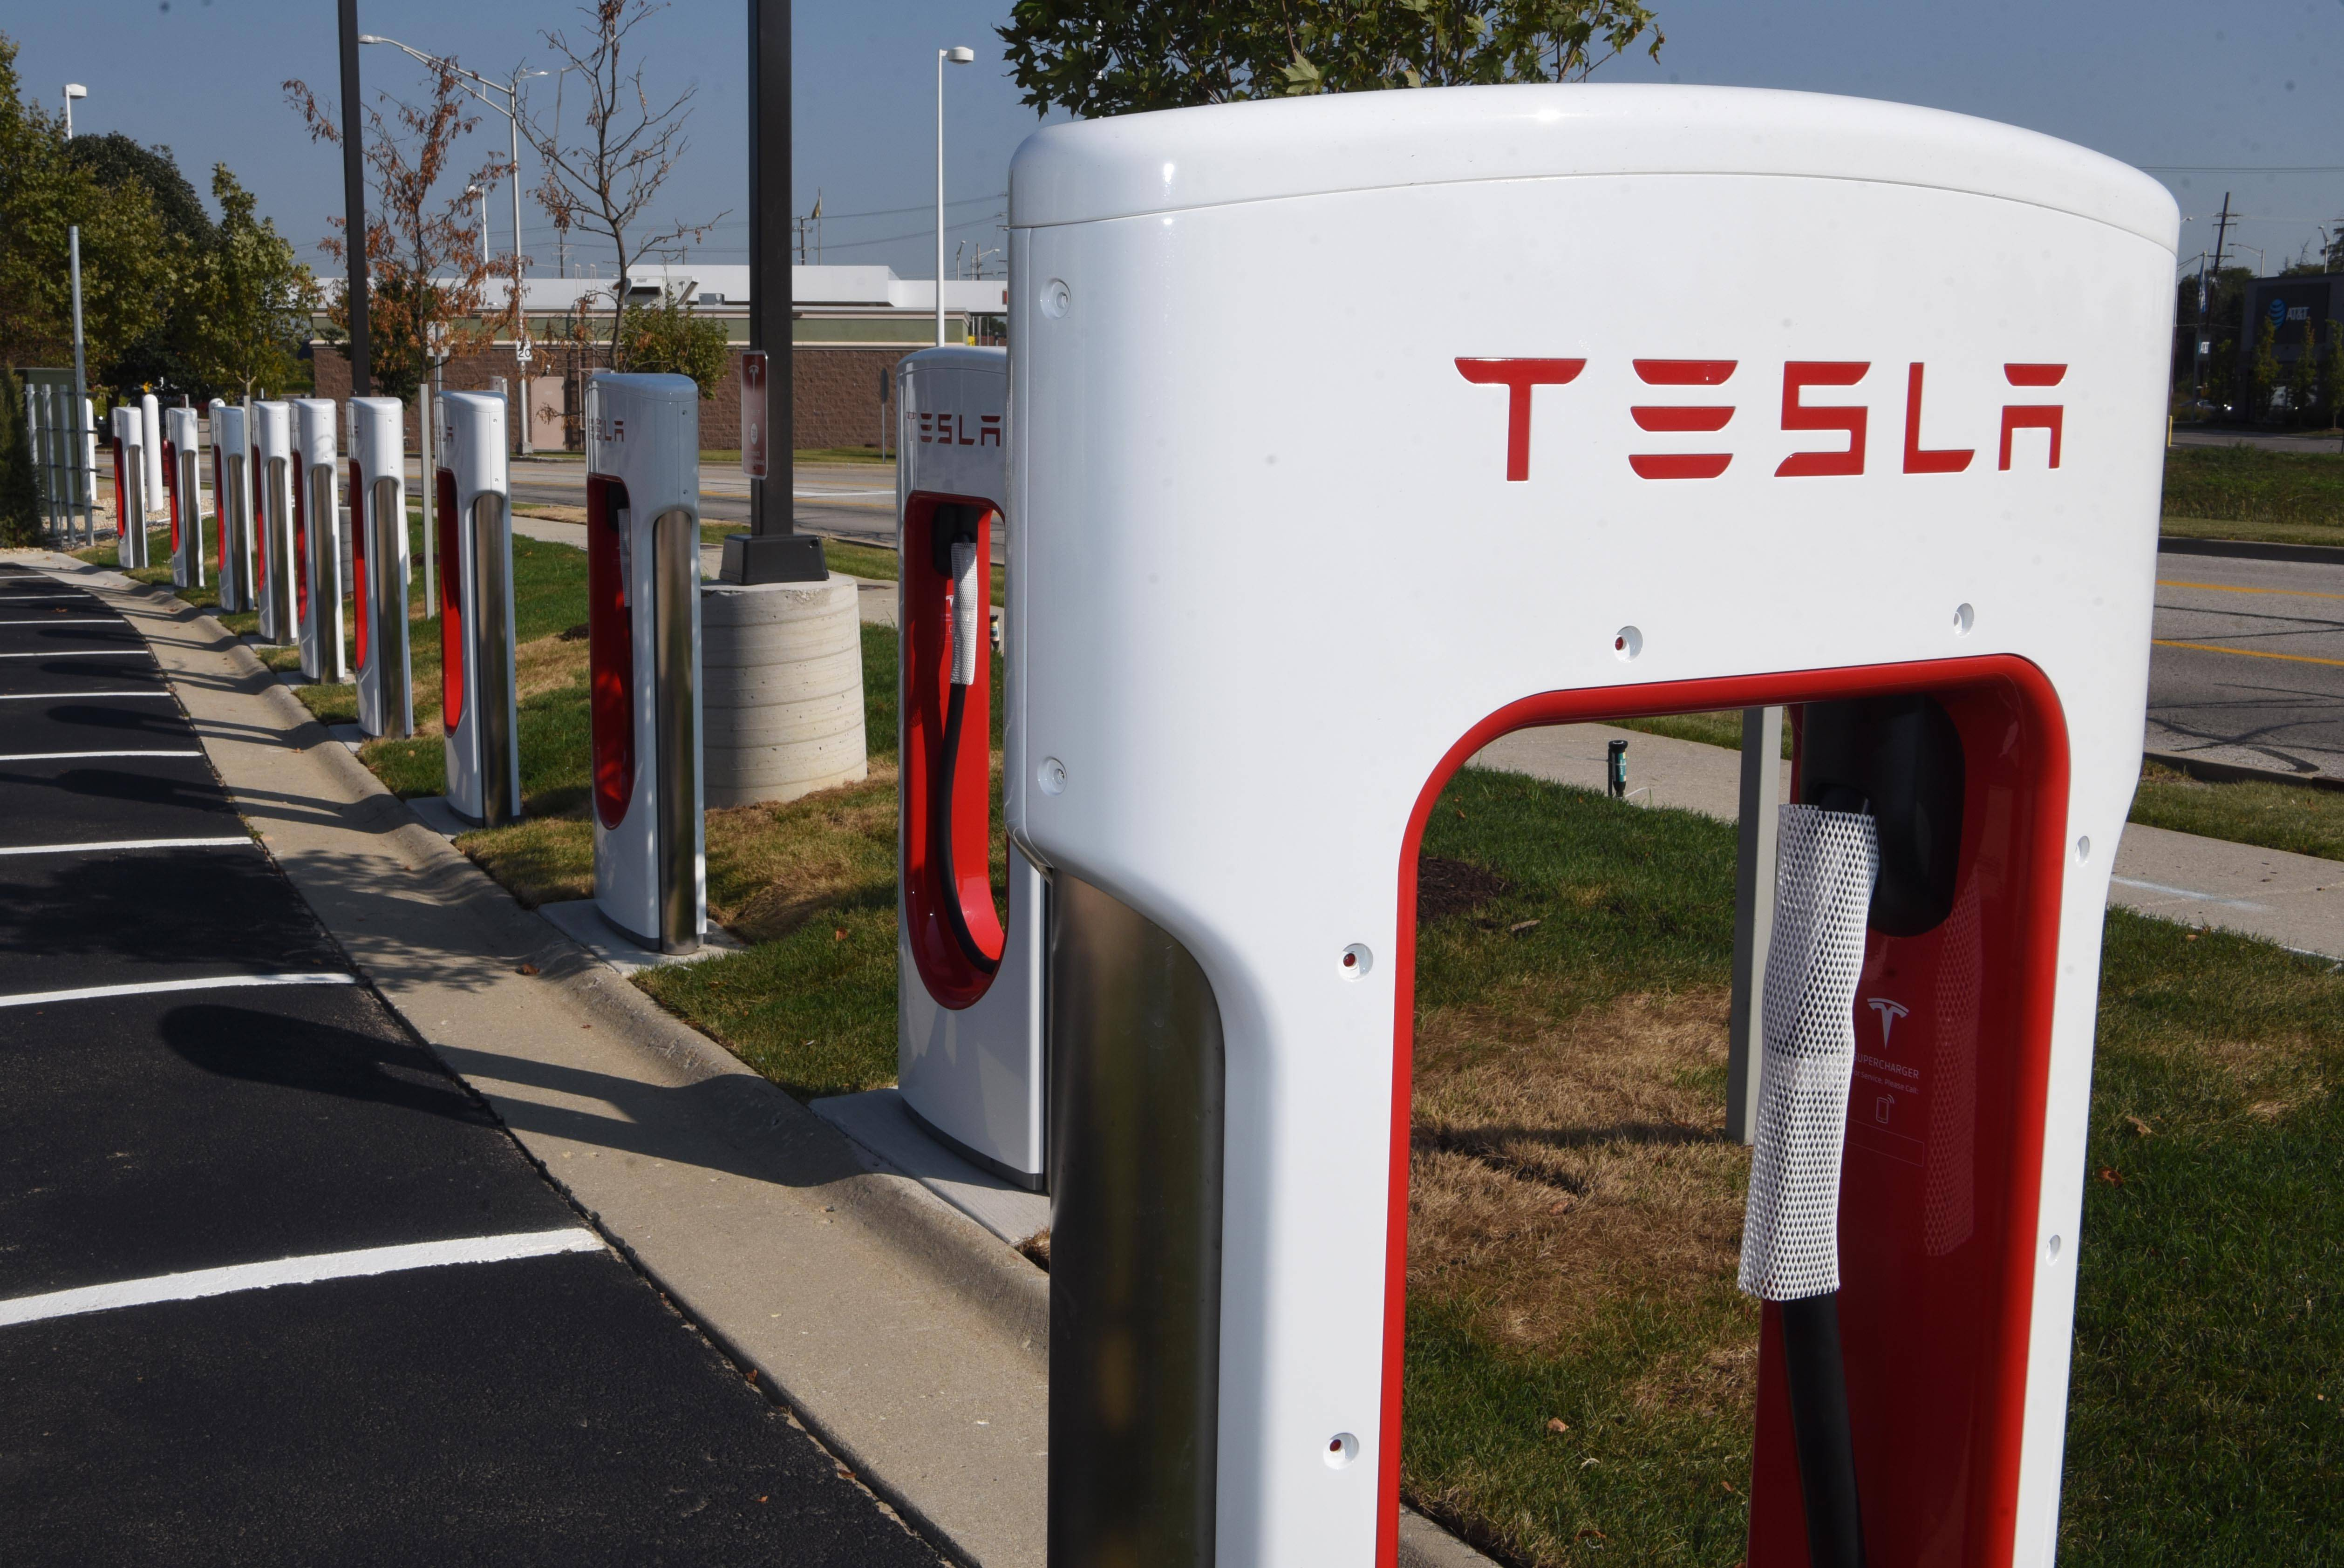 A new Tesla Supercharger station will open in the parking lot of the Meijer store in Rolling Meadows by the end of the year.